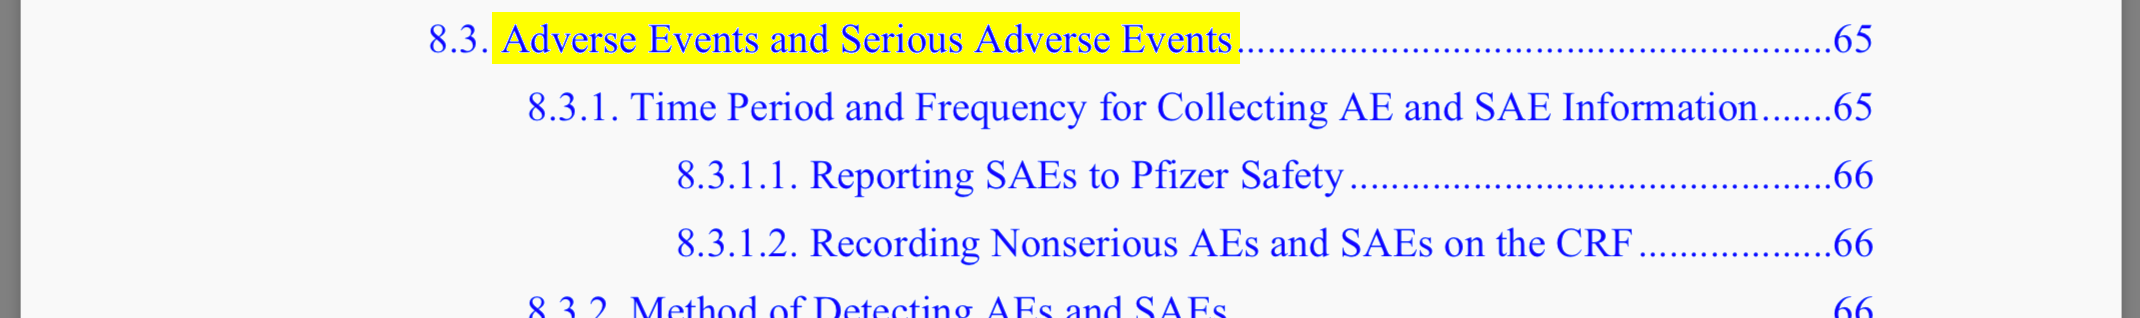 AEs and SAEs